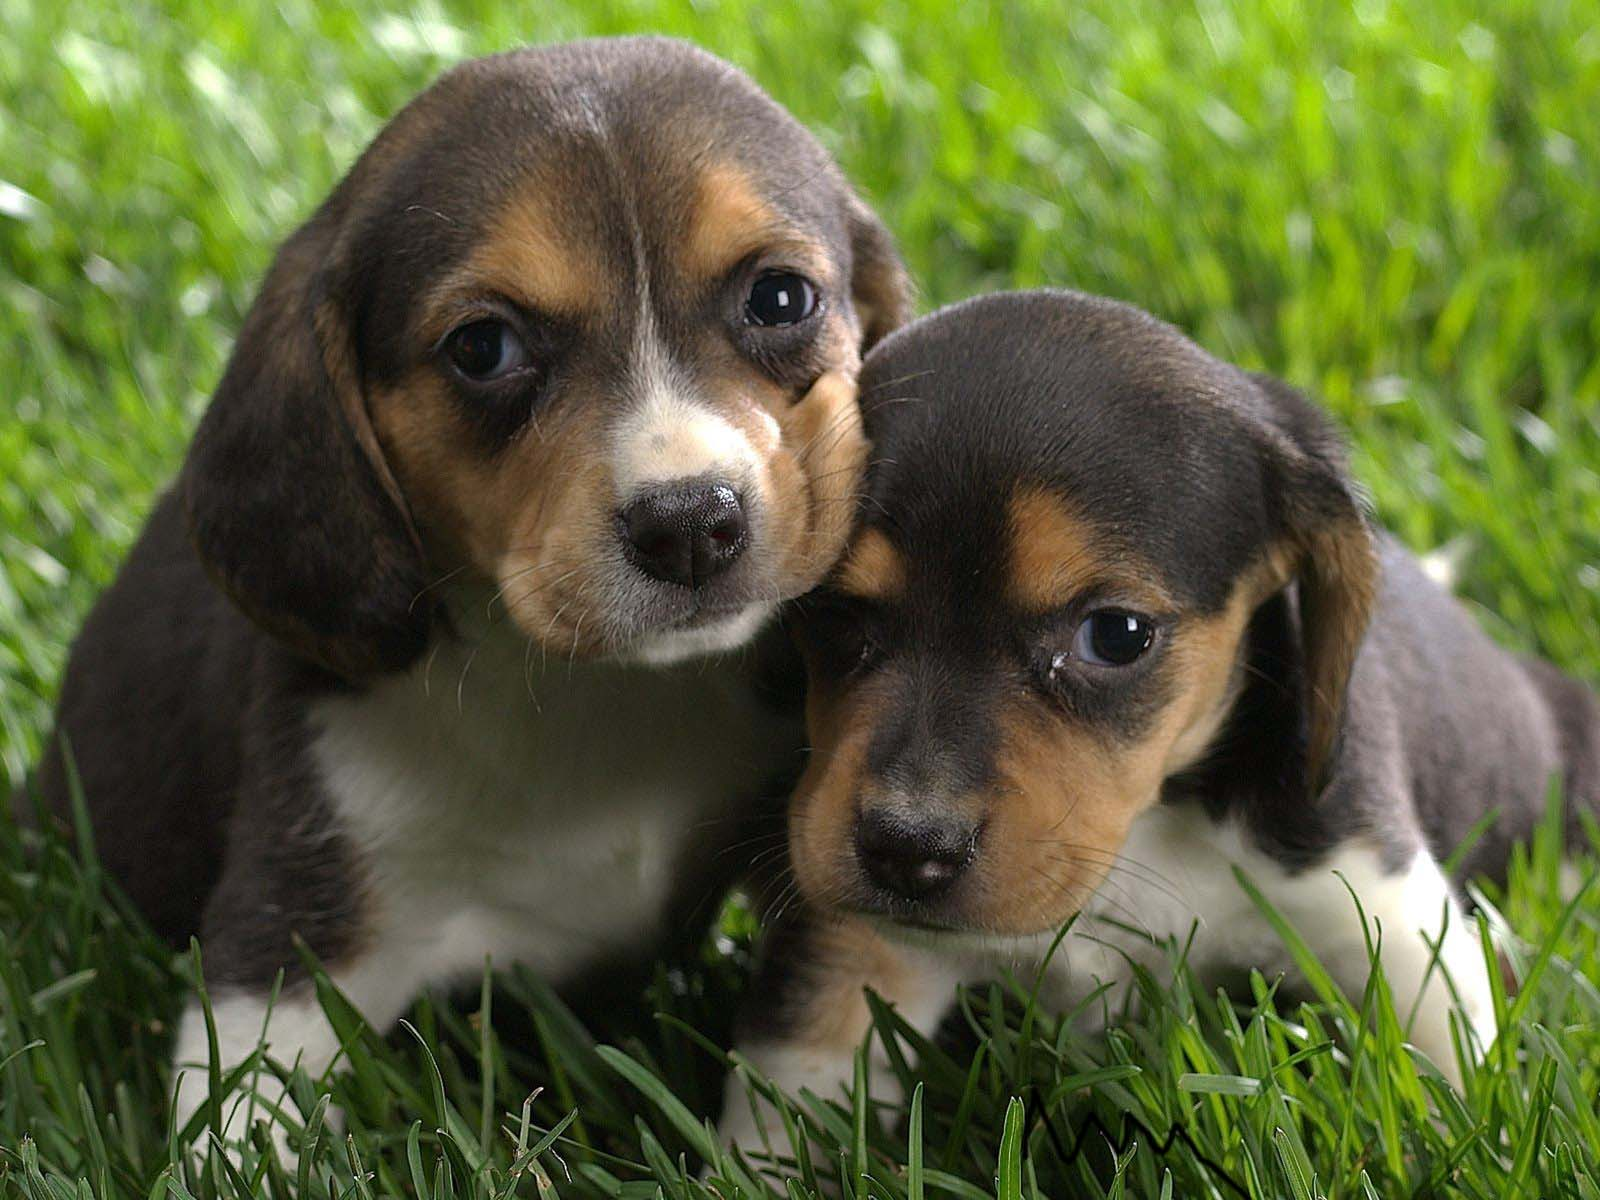 The Cute Dogs And Puppies, Nice Wallpapers